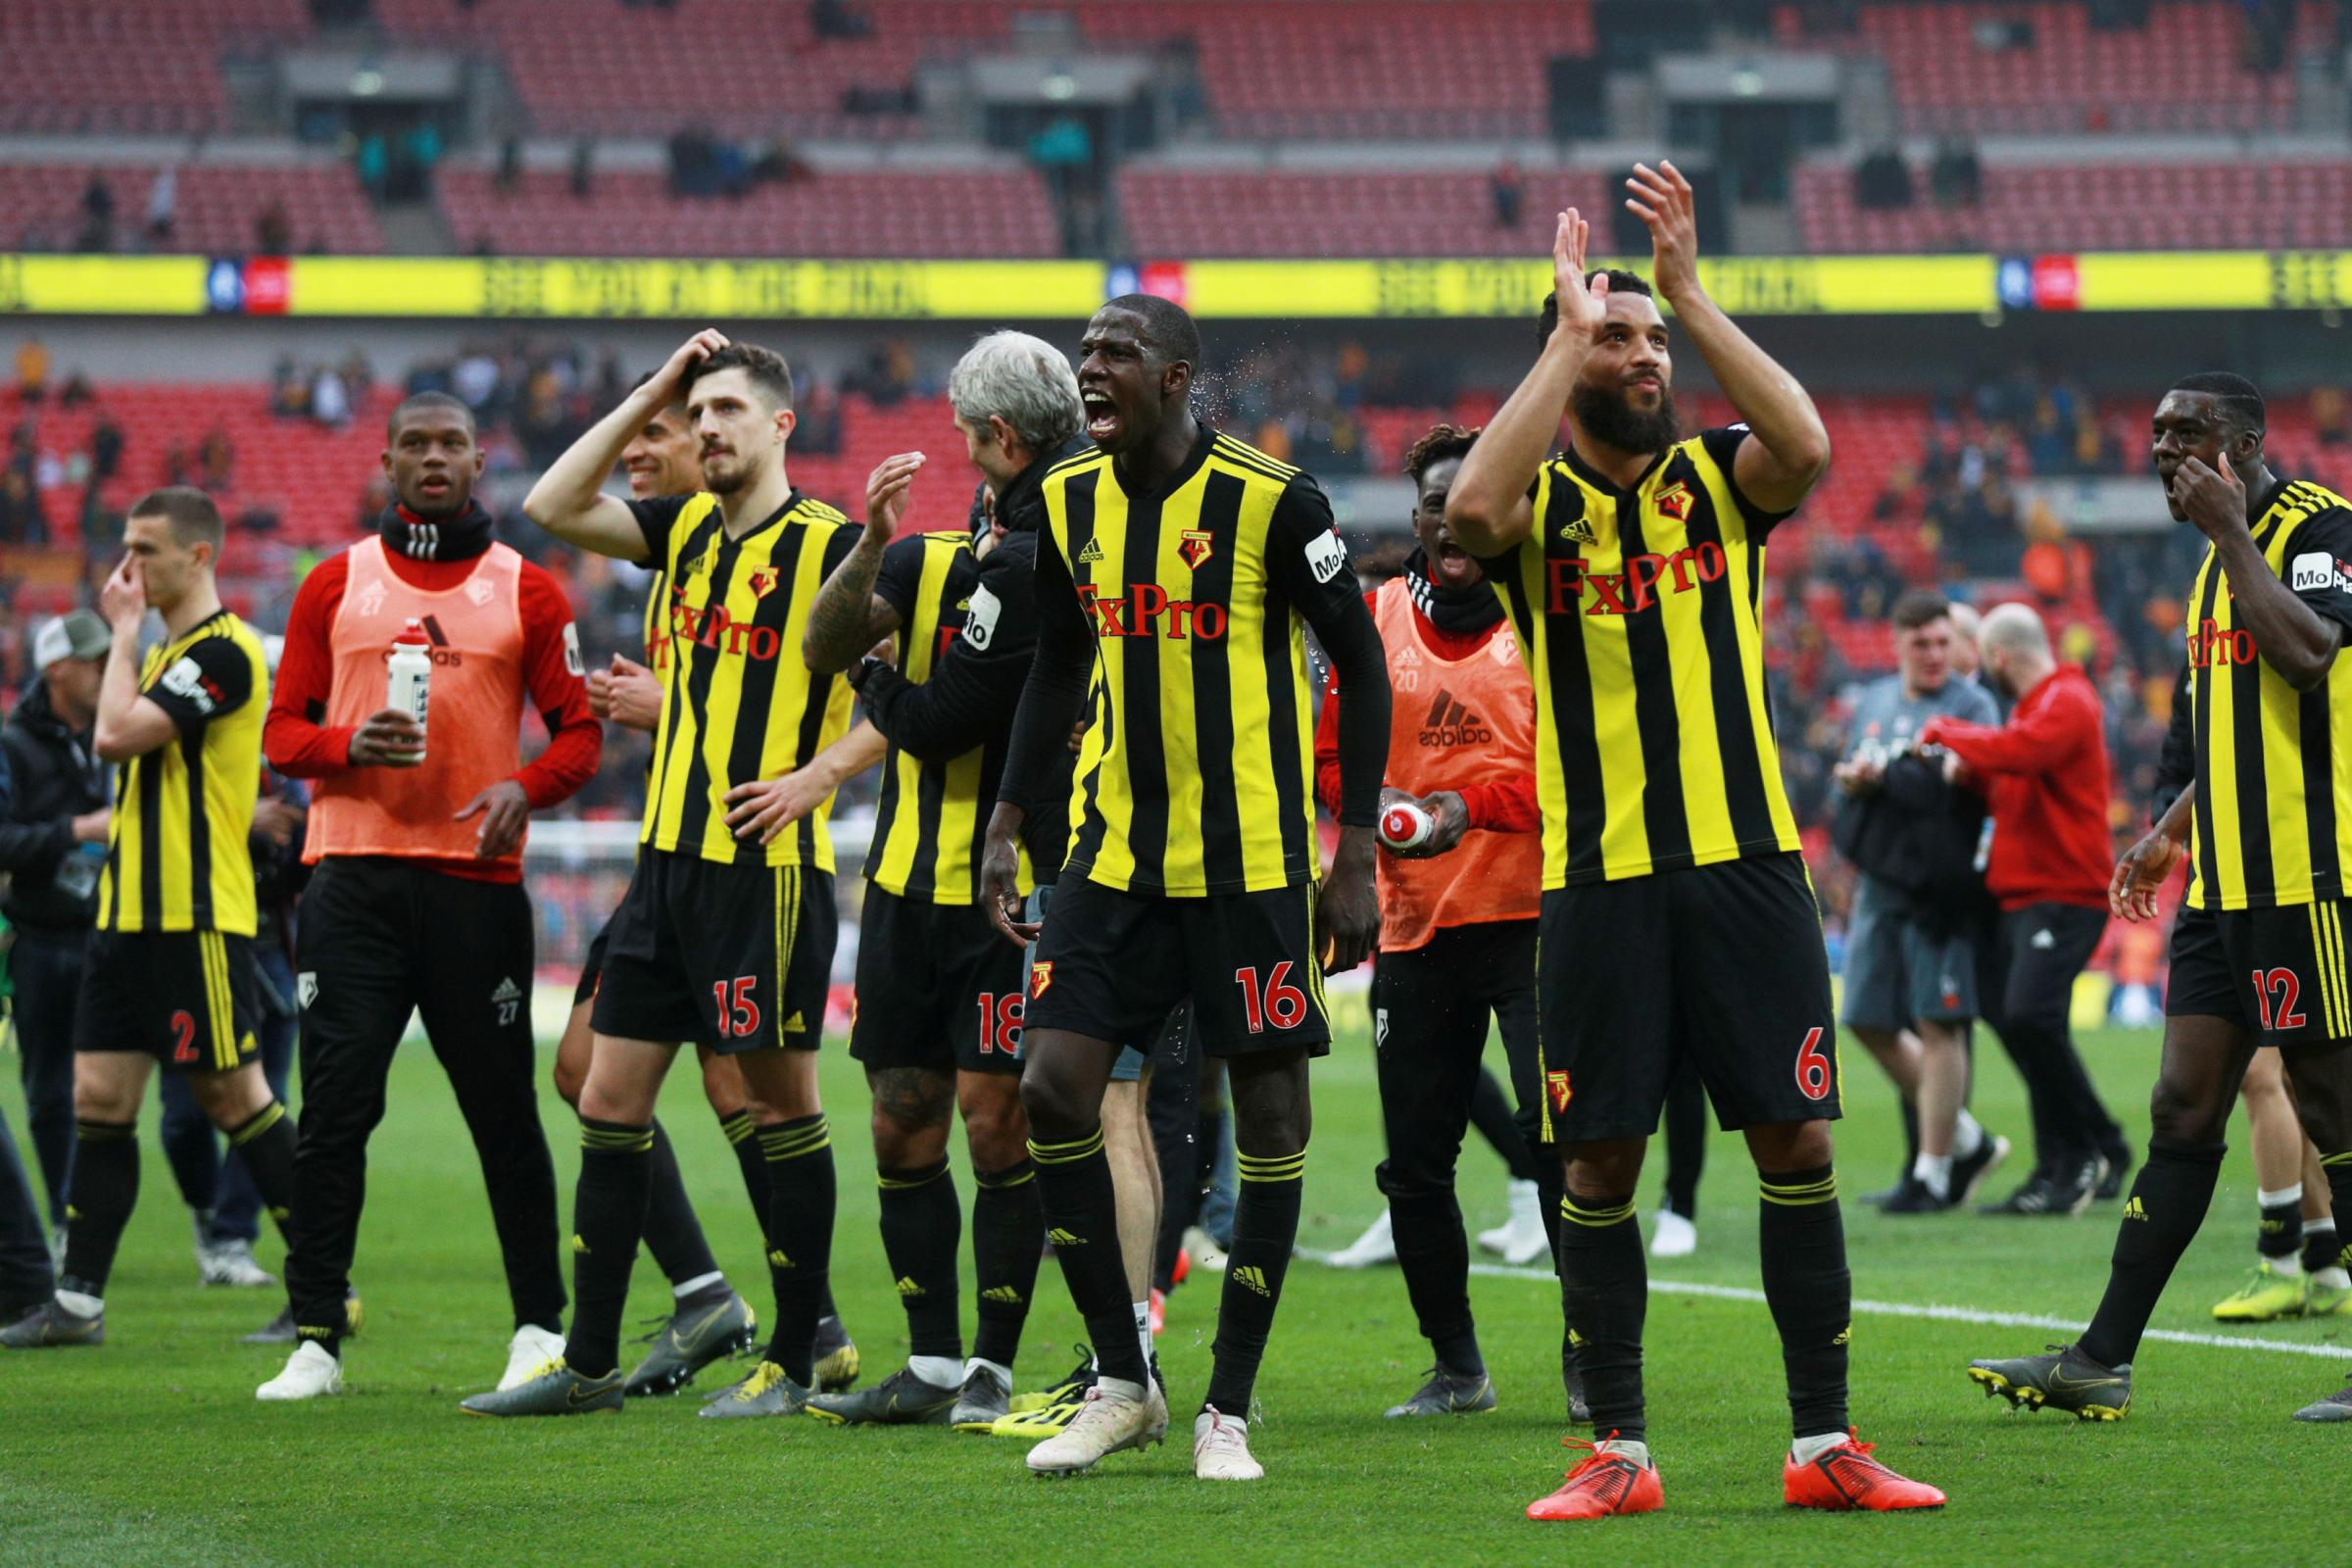 The road to the final: Deulofeu leads stunning semi-final fightback